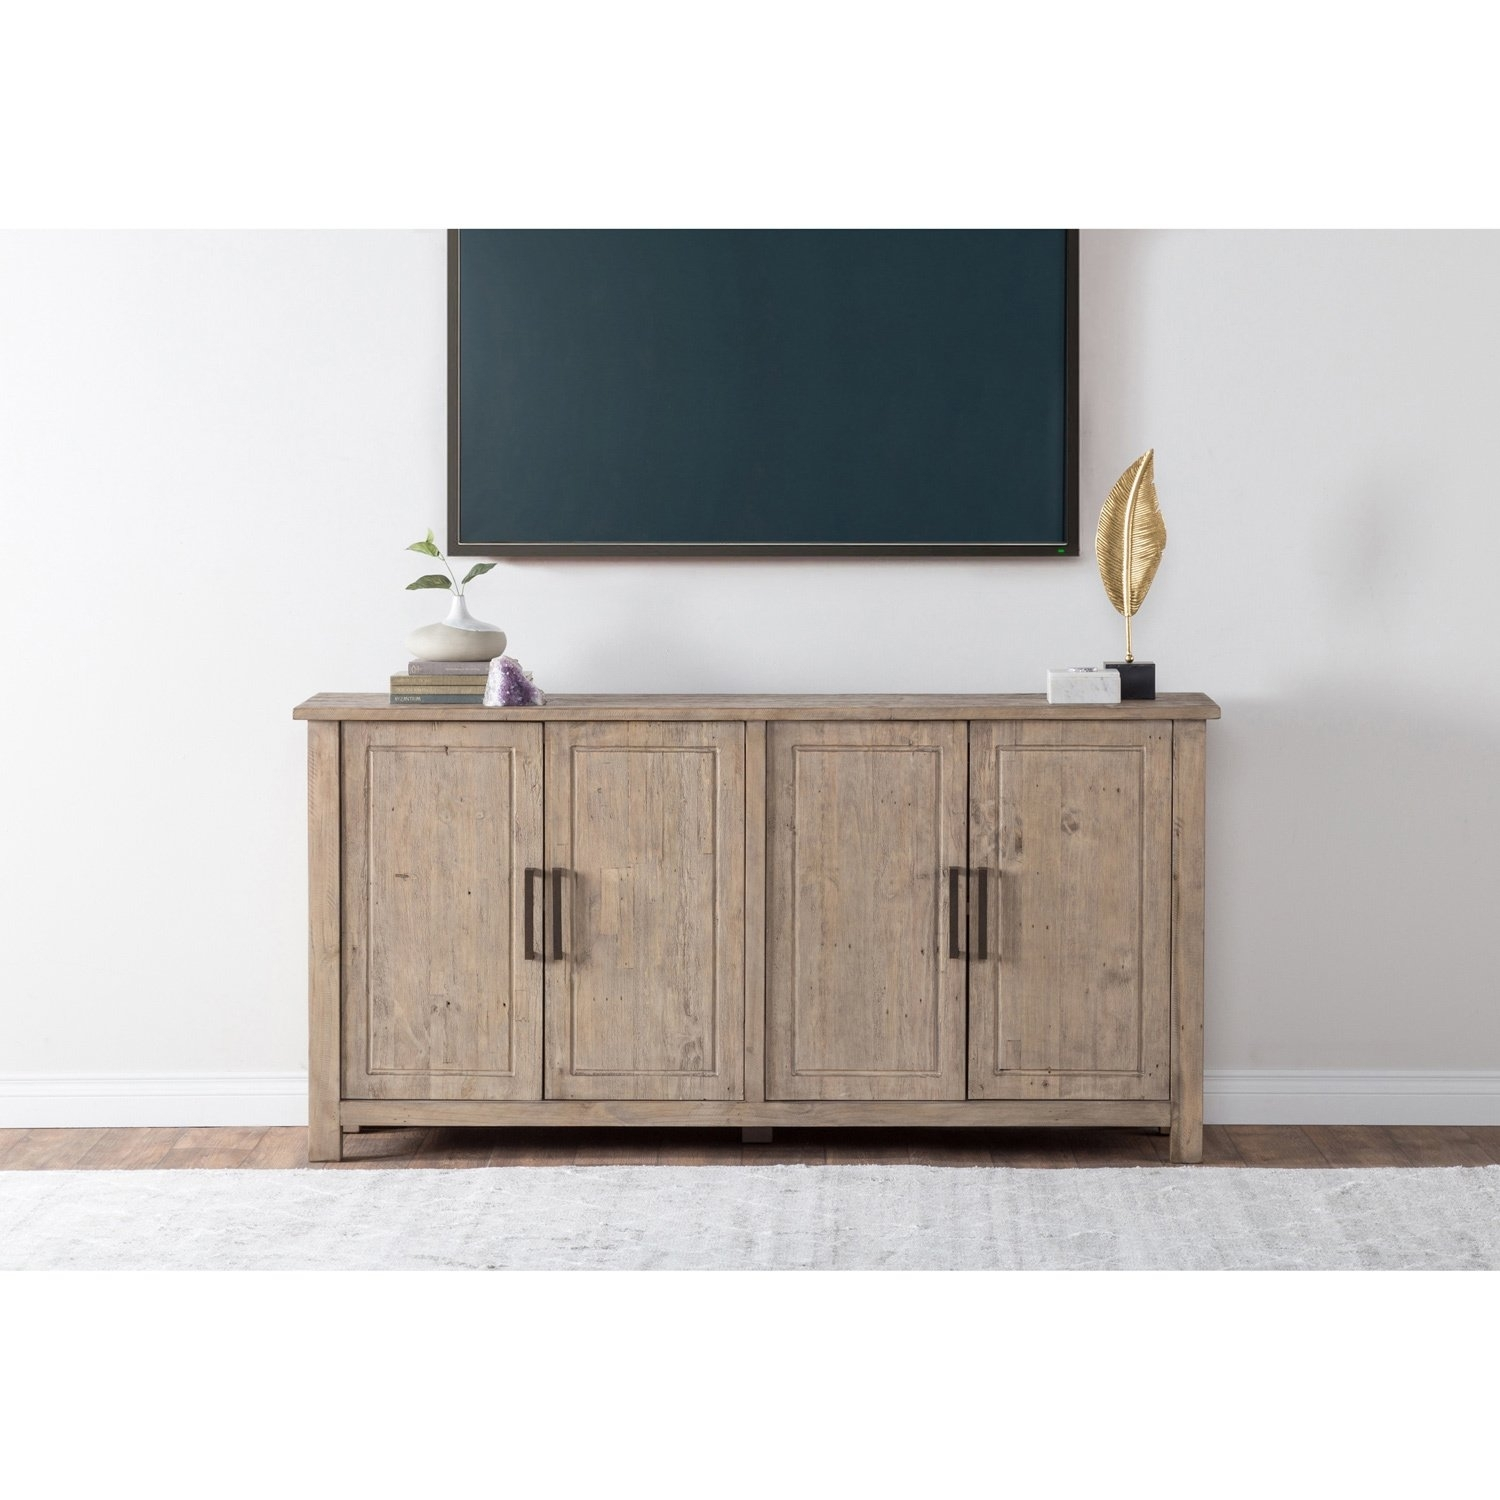 Shop Aires Reclaimed Wood 72 Inch Sideboardkosas Home – Free Pertaining To 2017 Reclaimed Pine & Iron 72 Inch Sideboards (View 6 of 20)